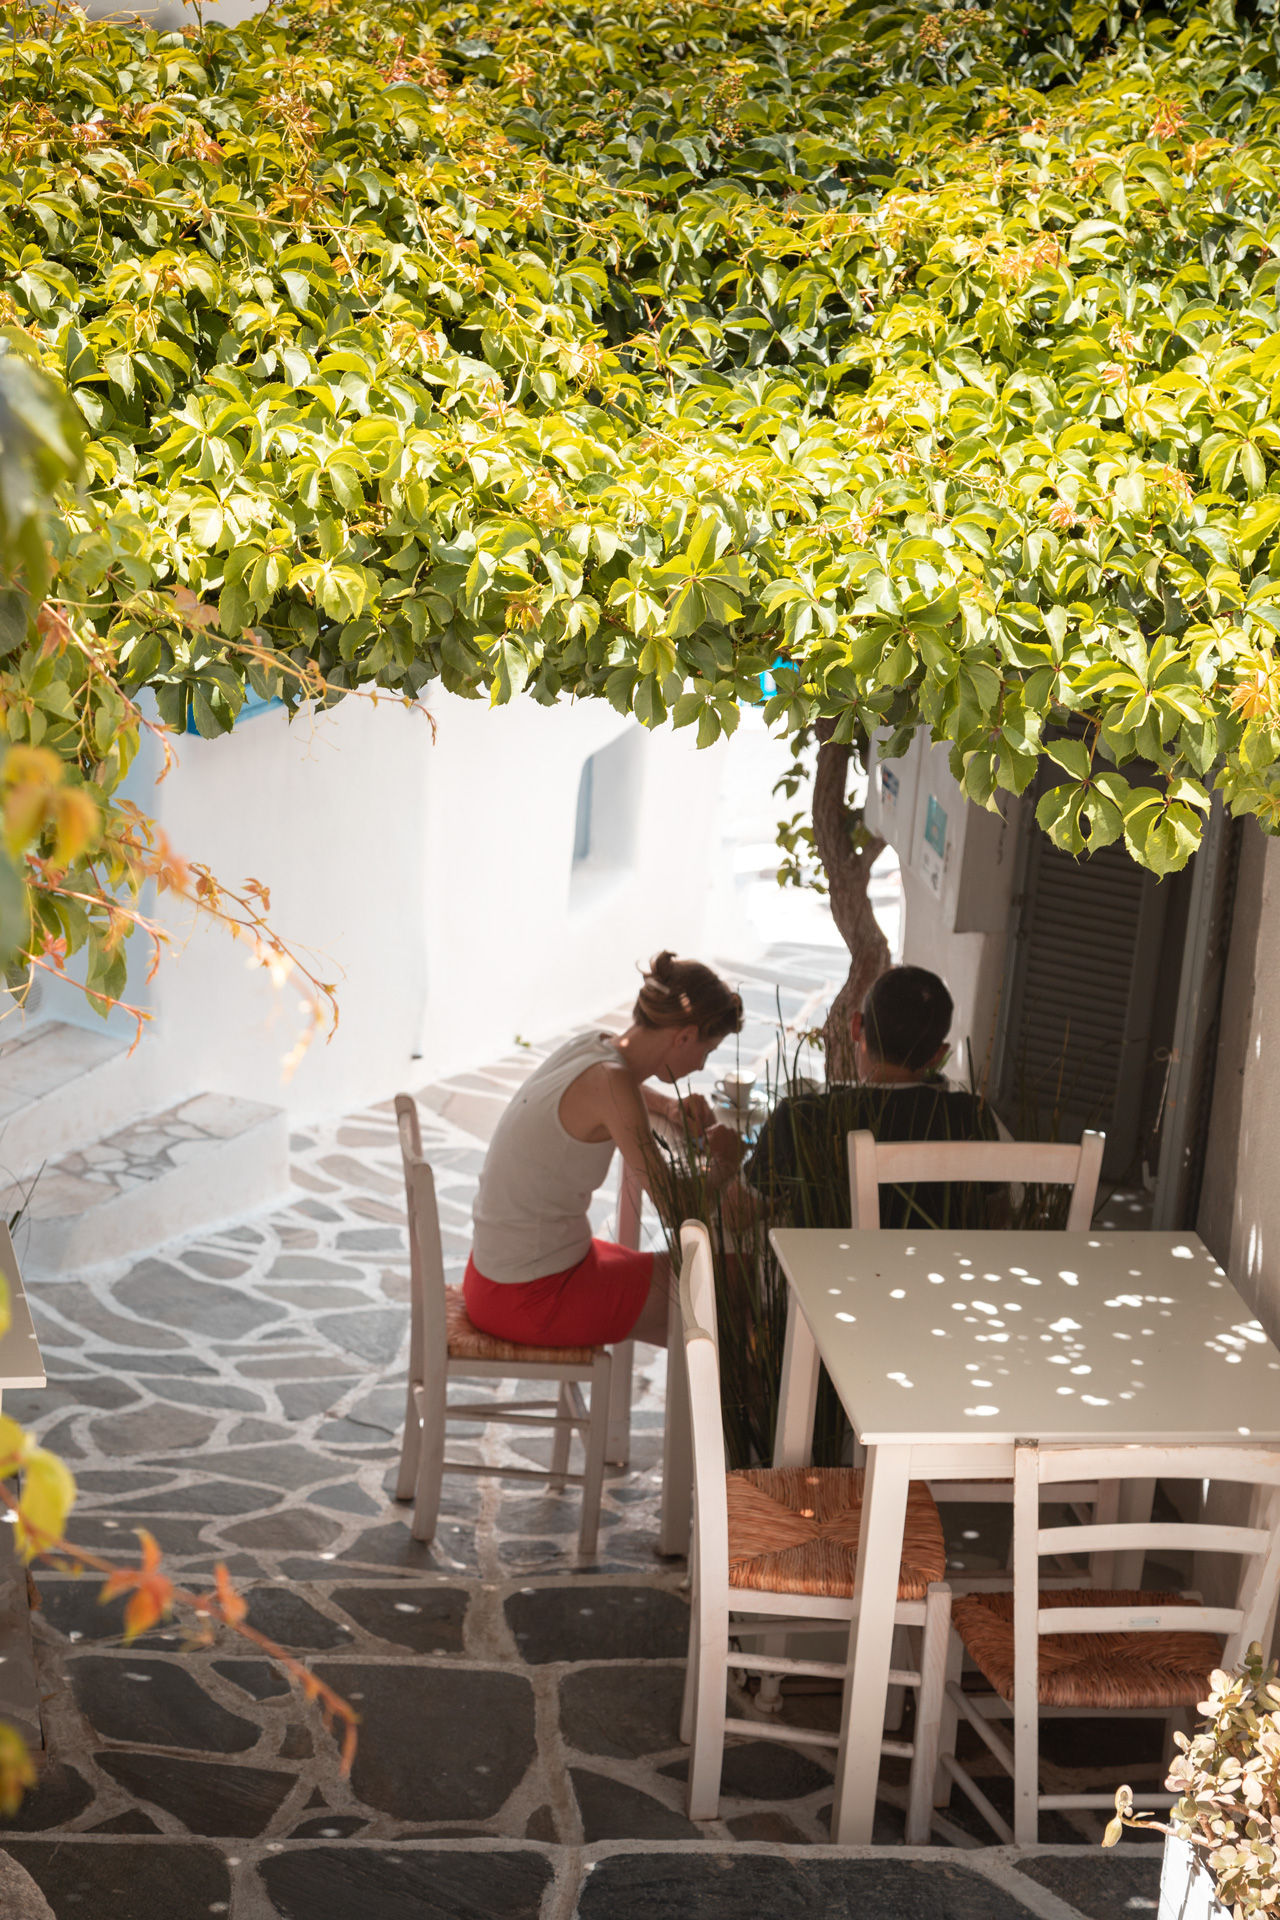 Naxos' legendary food is fully represented in Hora's tavernas and shops with local products